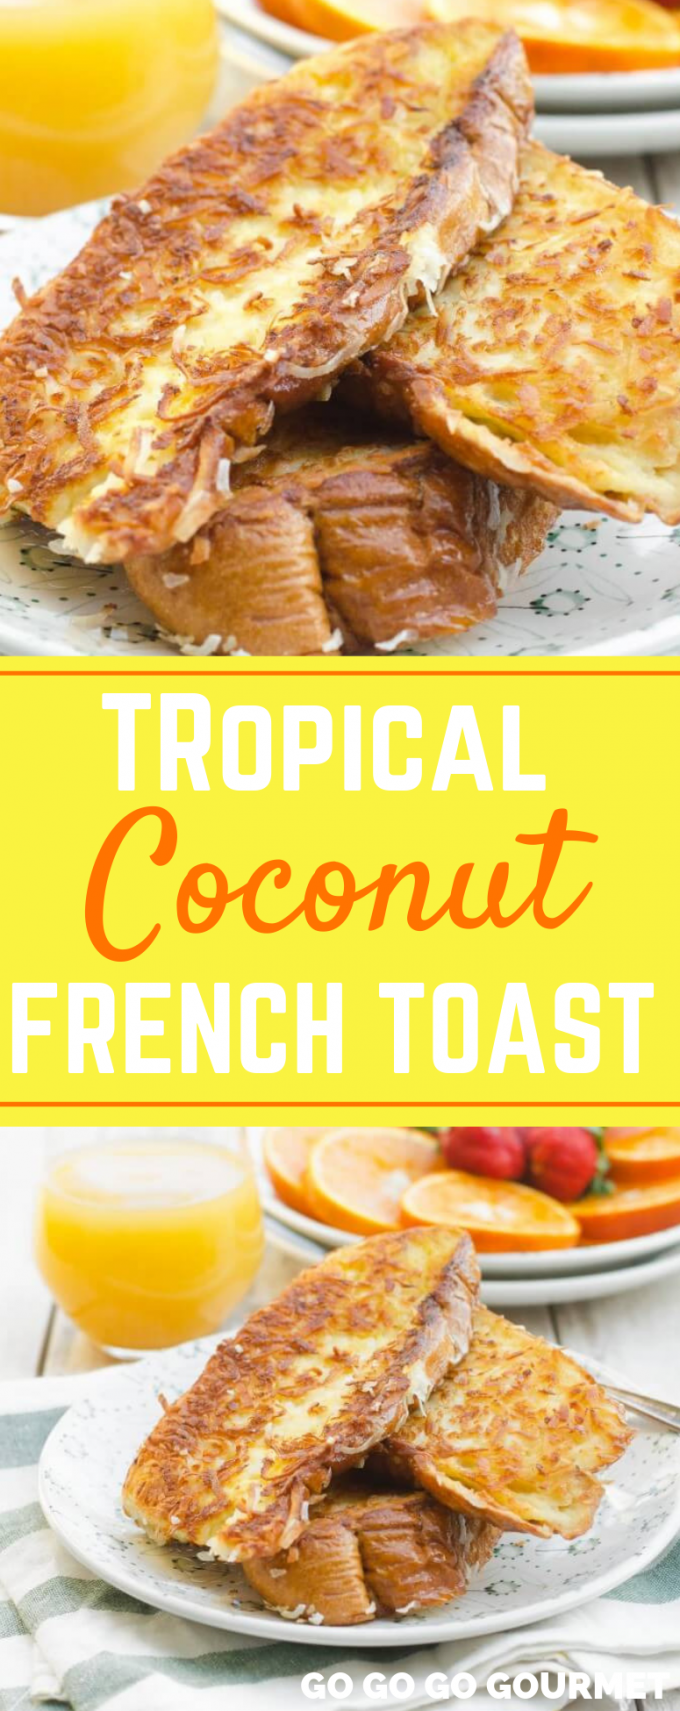 This Hummingbird Tropical Coconut French Toast brings the flavors of the tropics to your breakfast table! It's perfect topped with syrup, blueberries, or any other tropical fruits. No need to prepare overnight or bake it in the oven; you can have this dish ready in under 20 minutes! #gogogogourmet #coconutfrenchtoast #himmingbirdtropicalfrenchtoast via @gogogogourmet